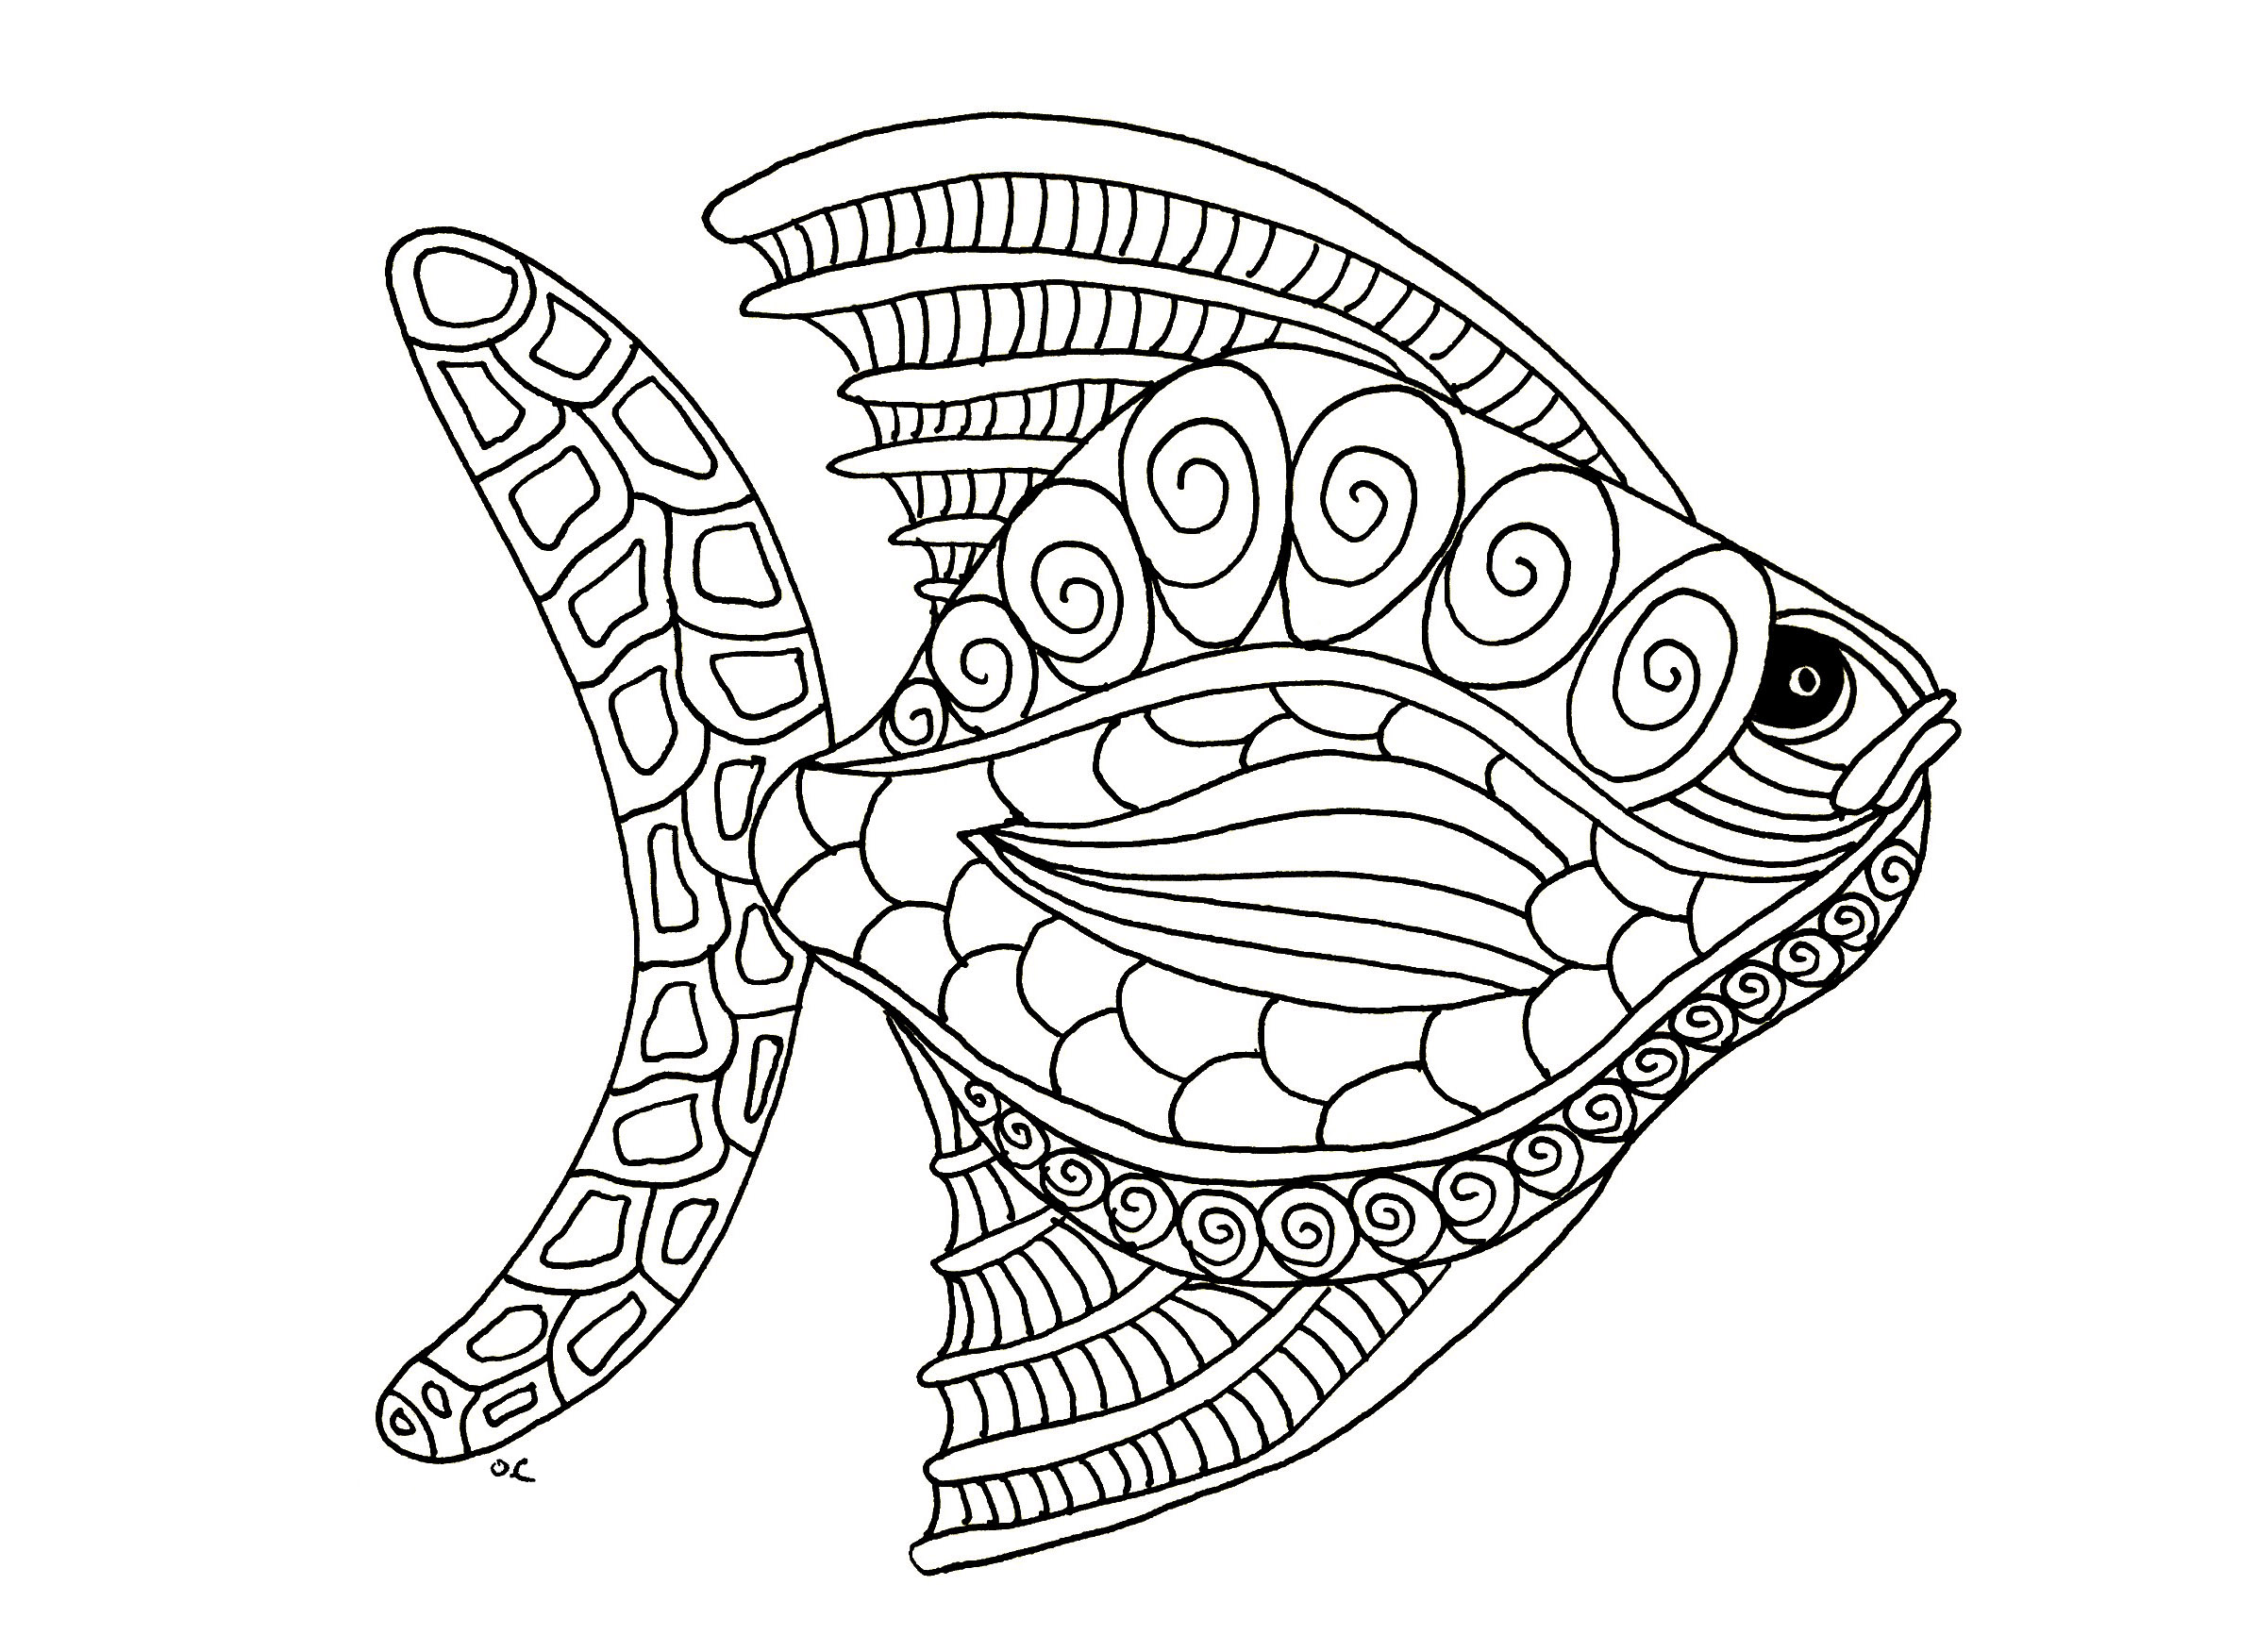 Poisson style Zentangle - étape 1